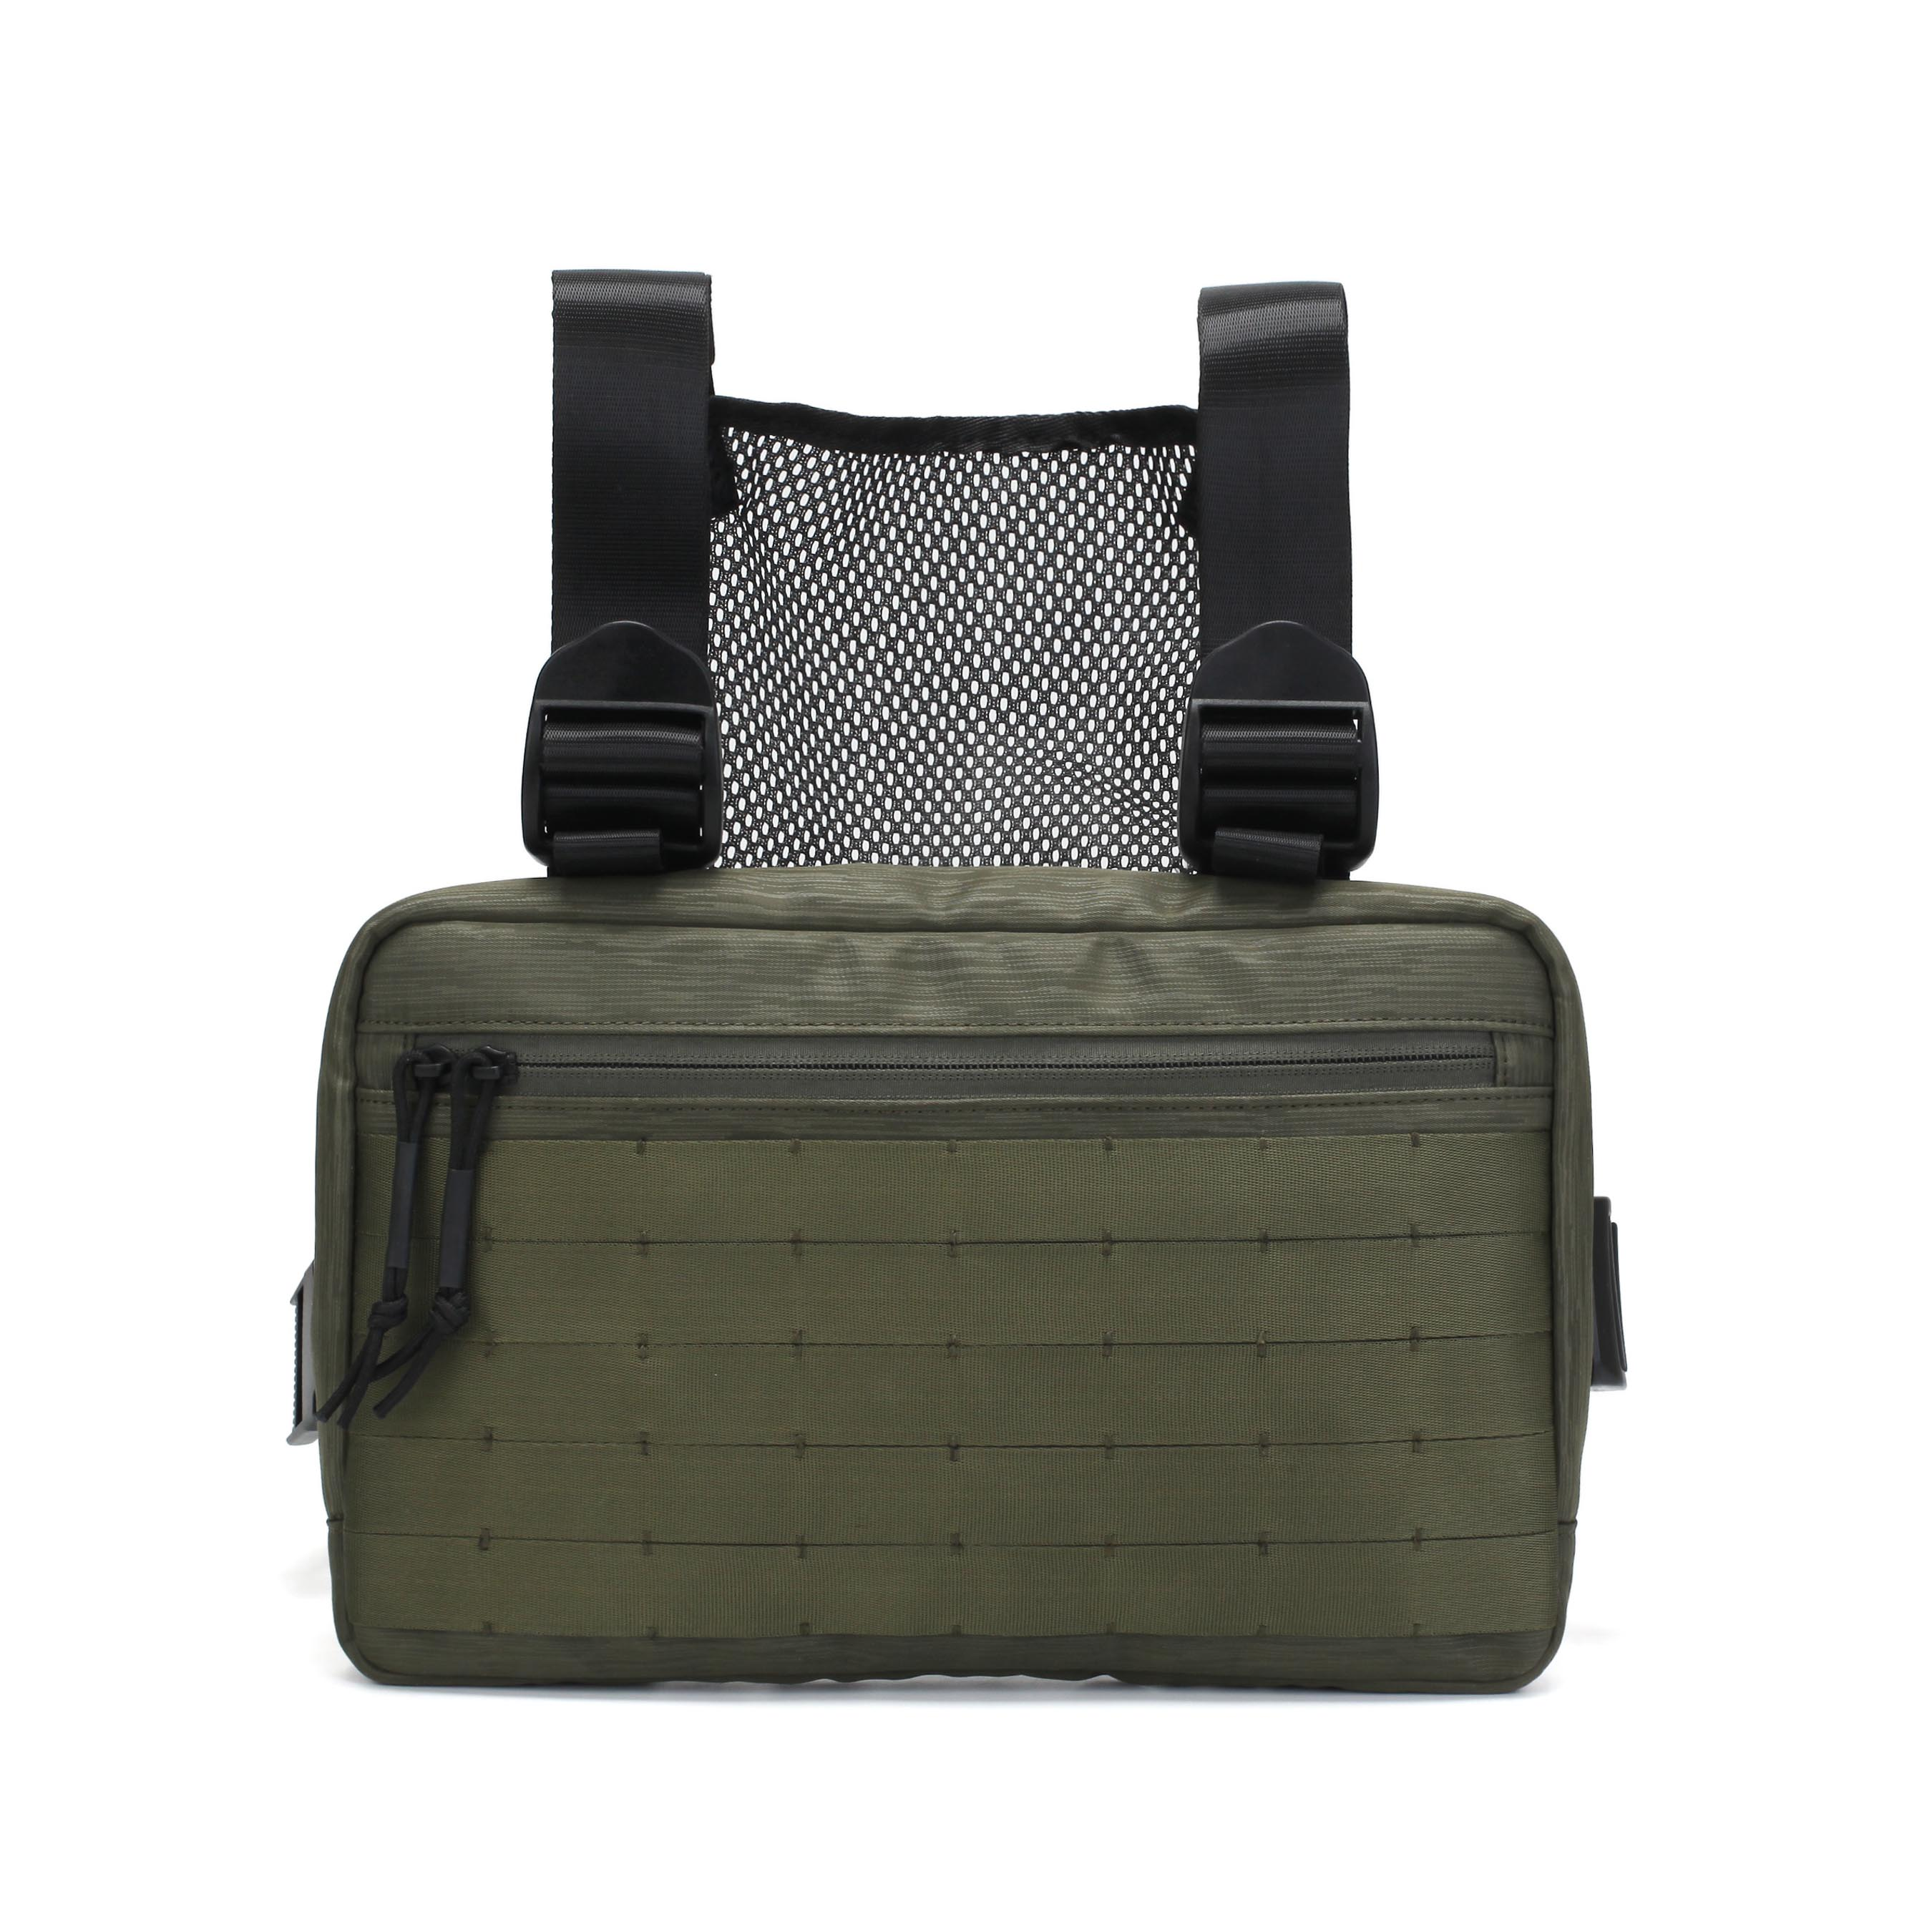 2019 New Design Tactical Chest Rig Bag Military  Vest Pouch EDC Combat Bag with Suspenders and Front Pouch